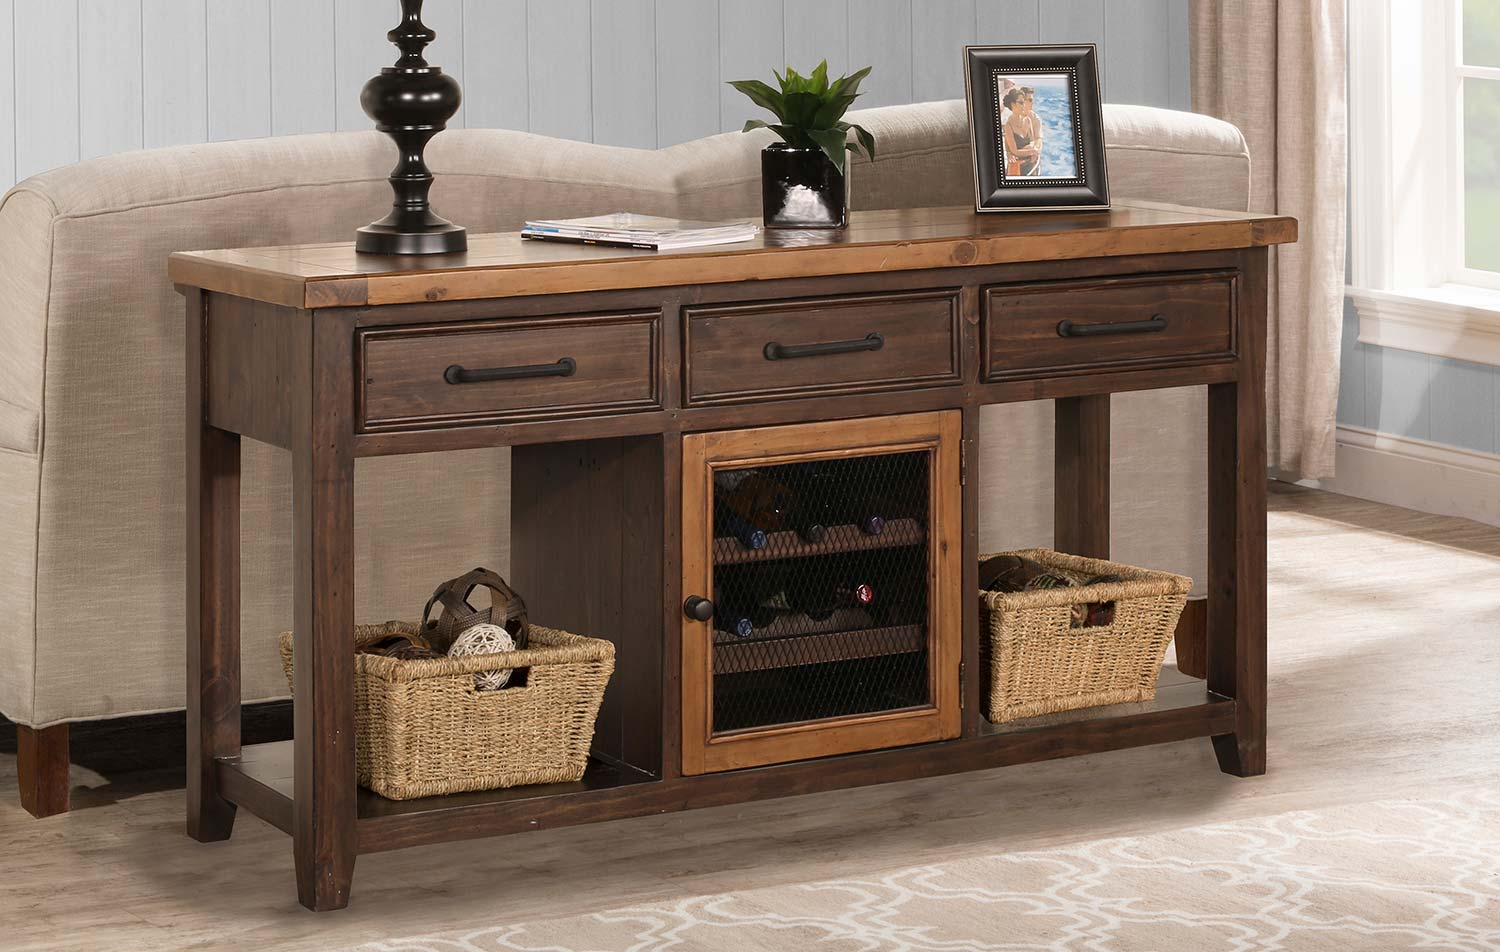 Sofa Table With Wine Rack And 2 Basket